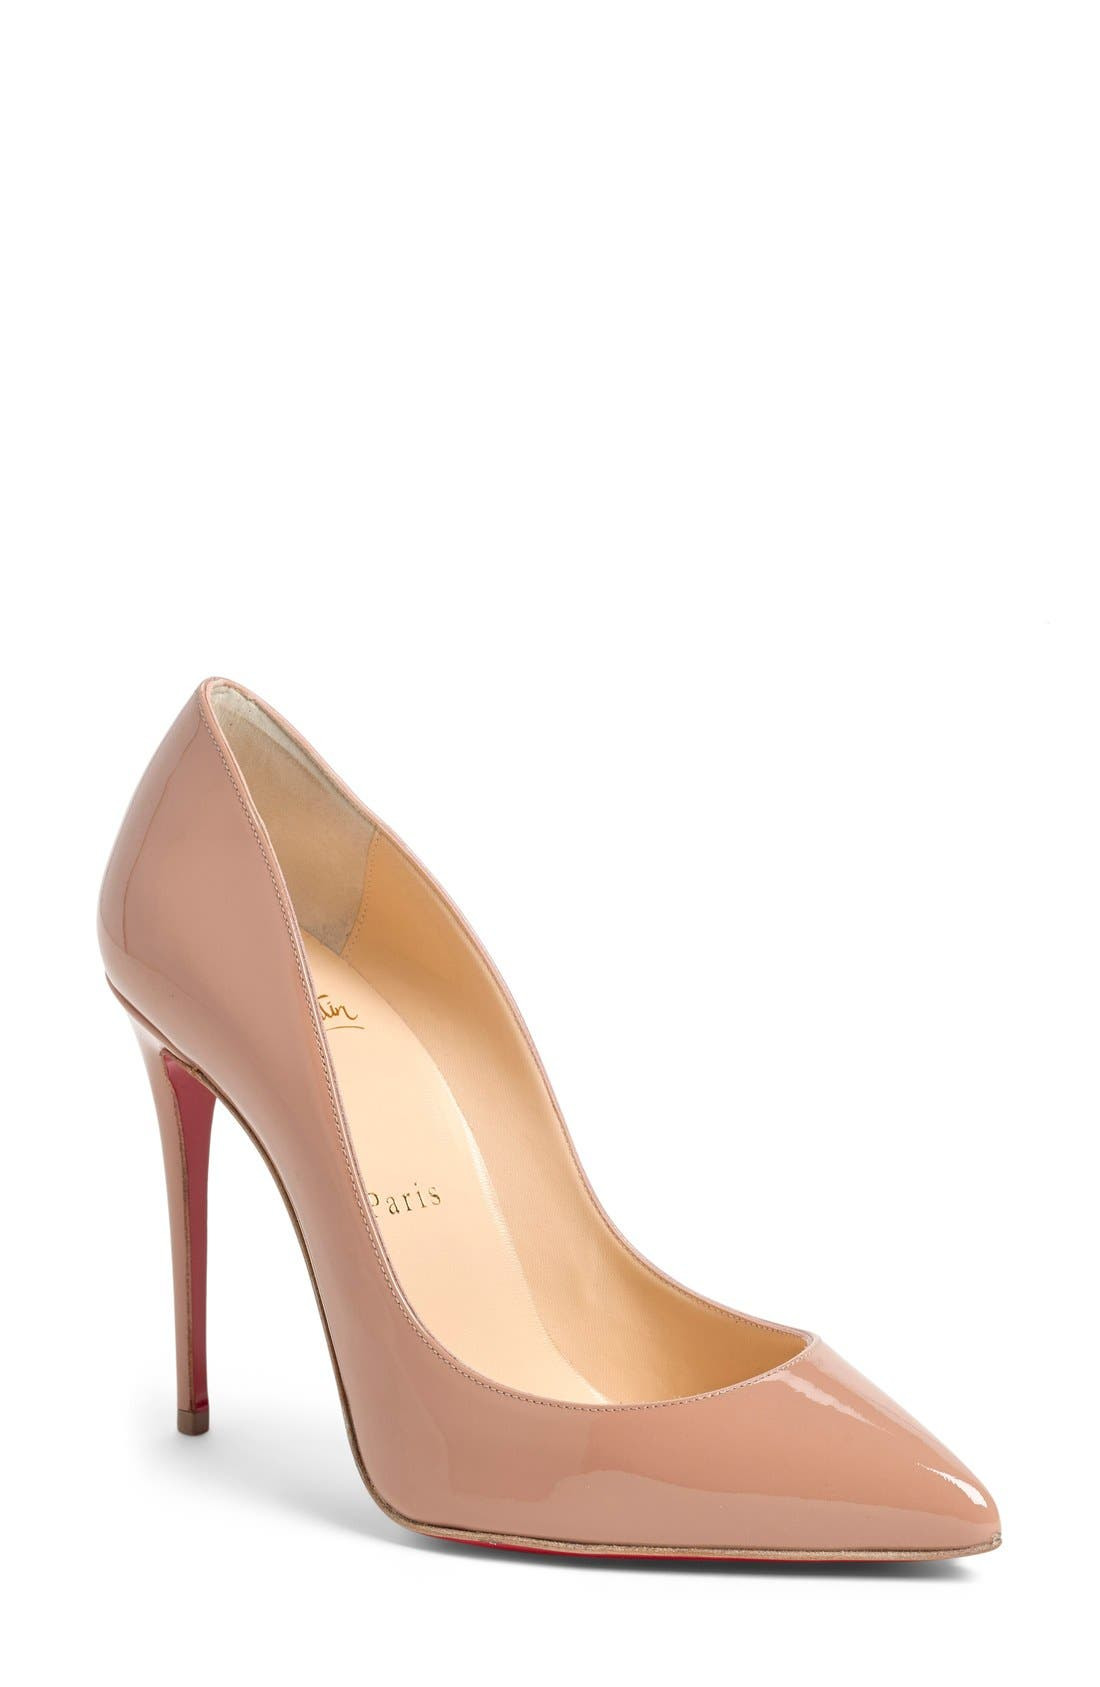 Nude pointed toe pumps Nude Photos 1